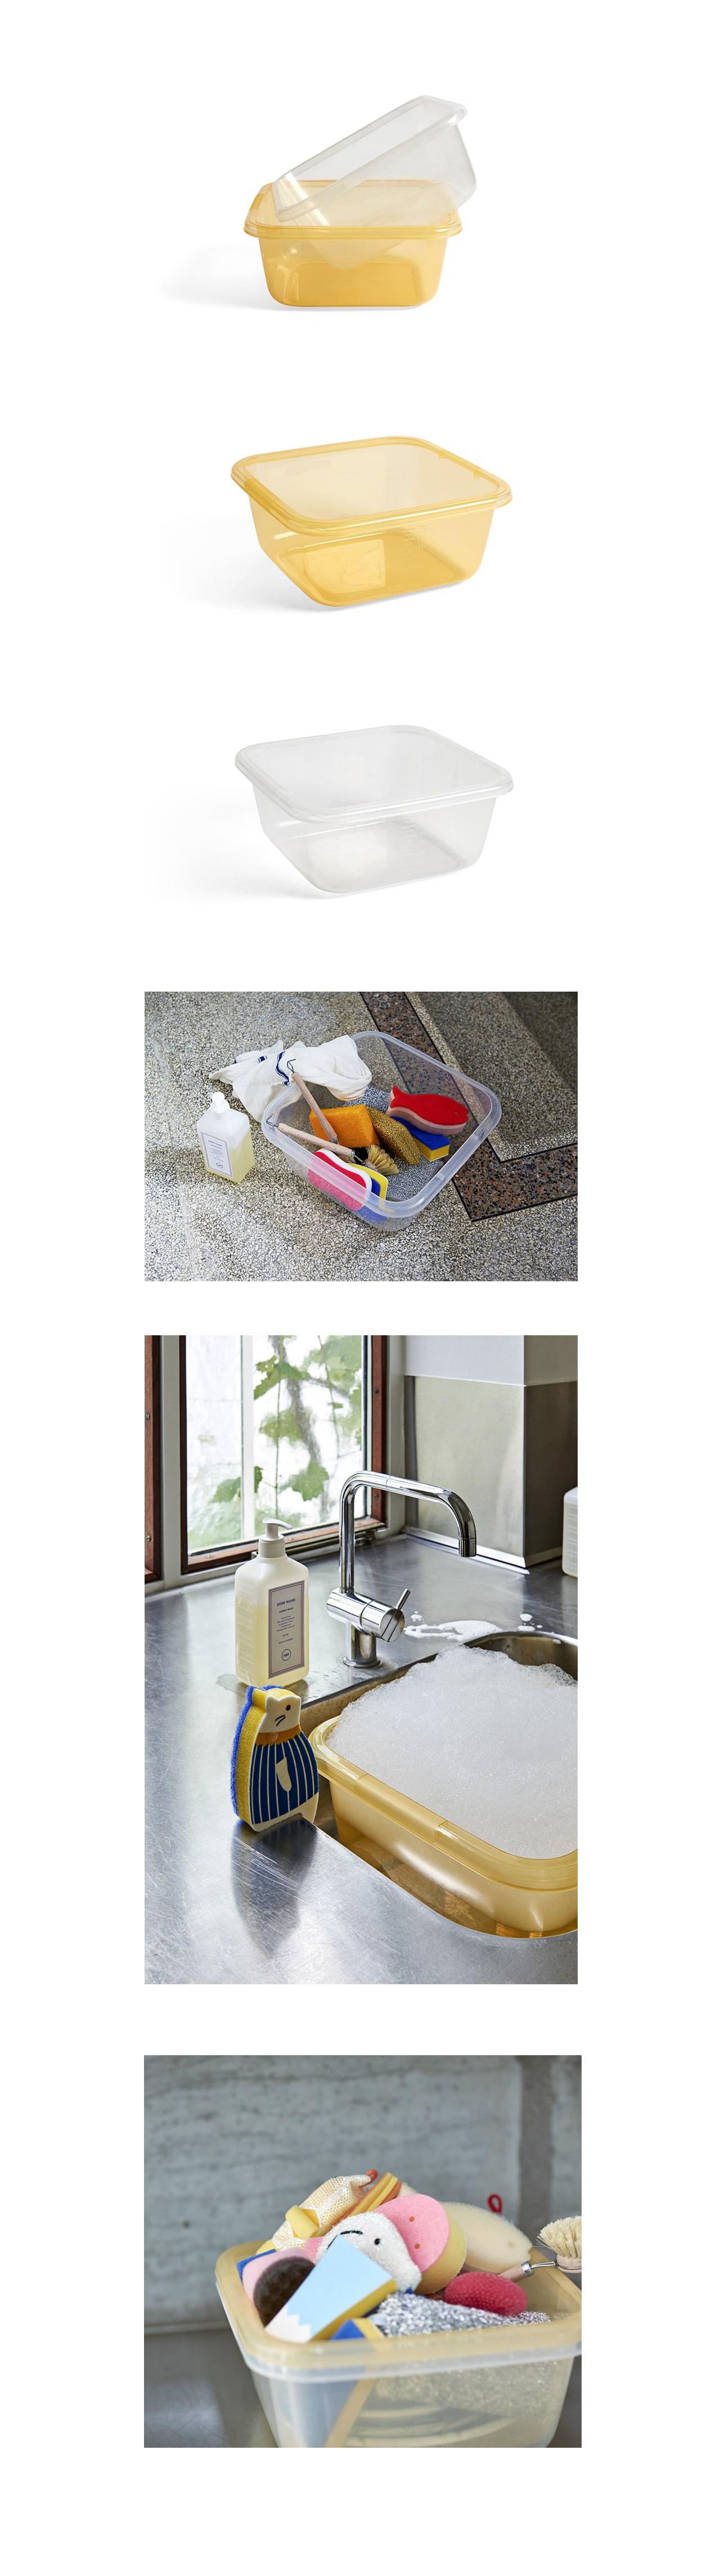 Turkish_Washing-Up_Bowl